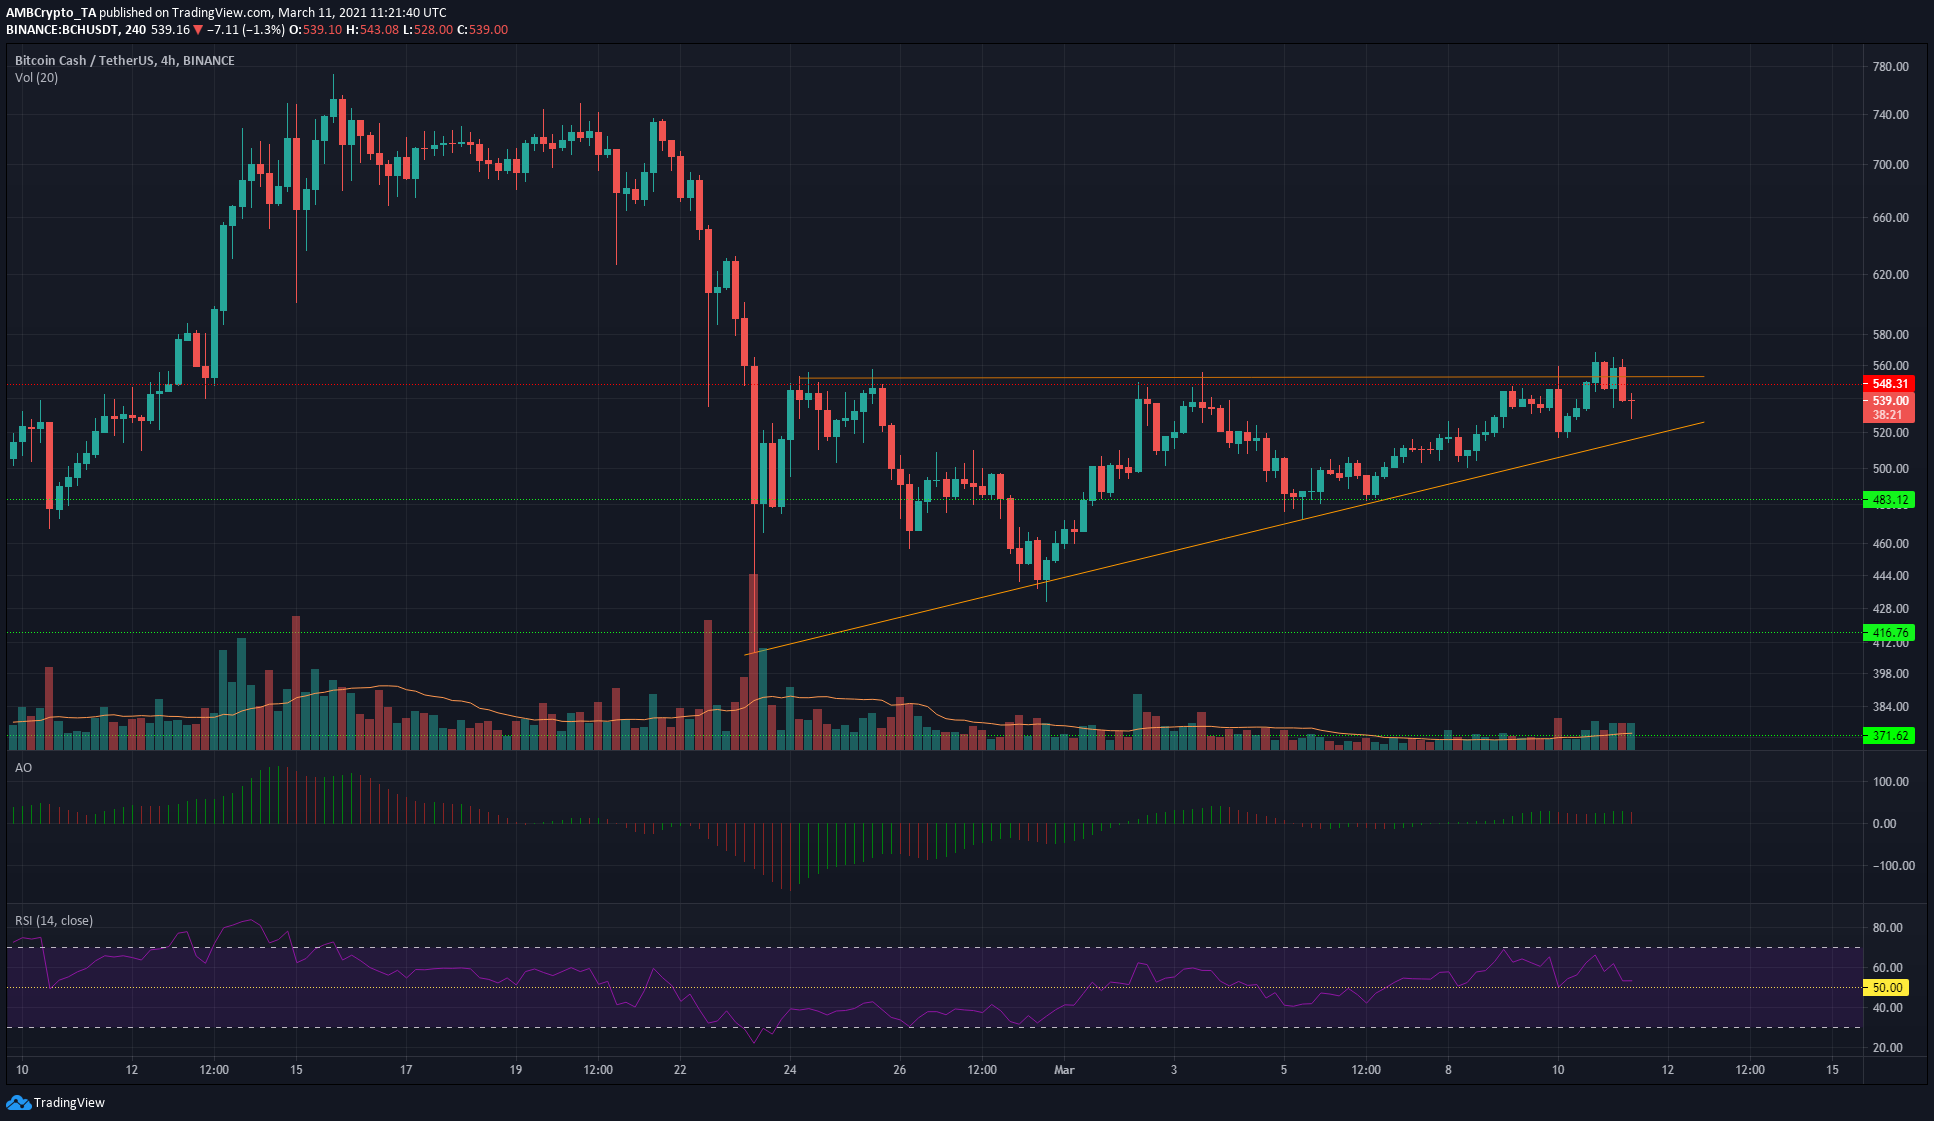 Bitcoin Cash, Ethereum Classic, VeChain Price Analysis: 11 March